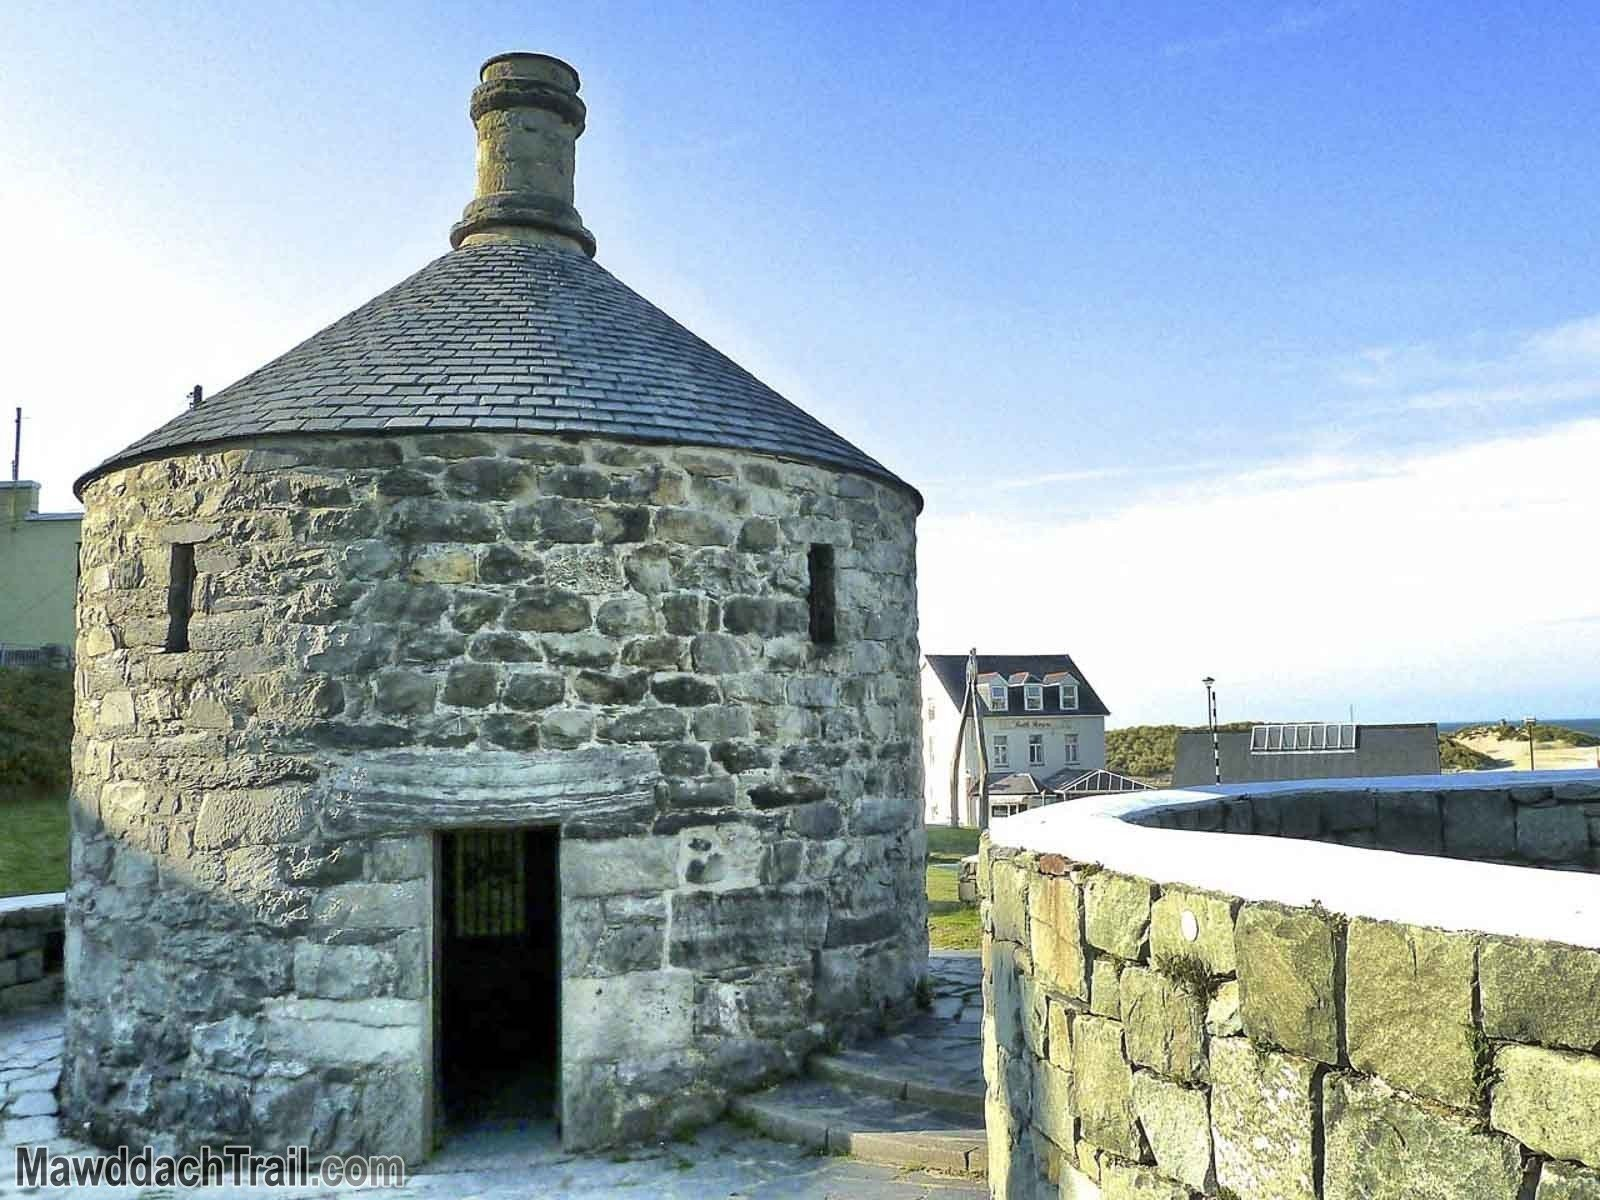 The Barmouth Round House